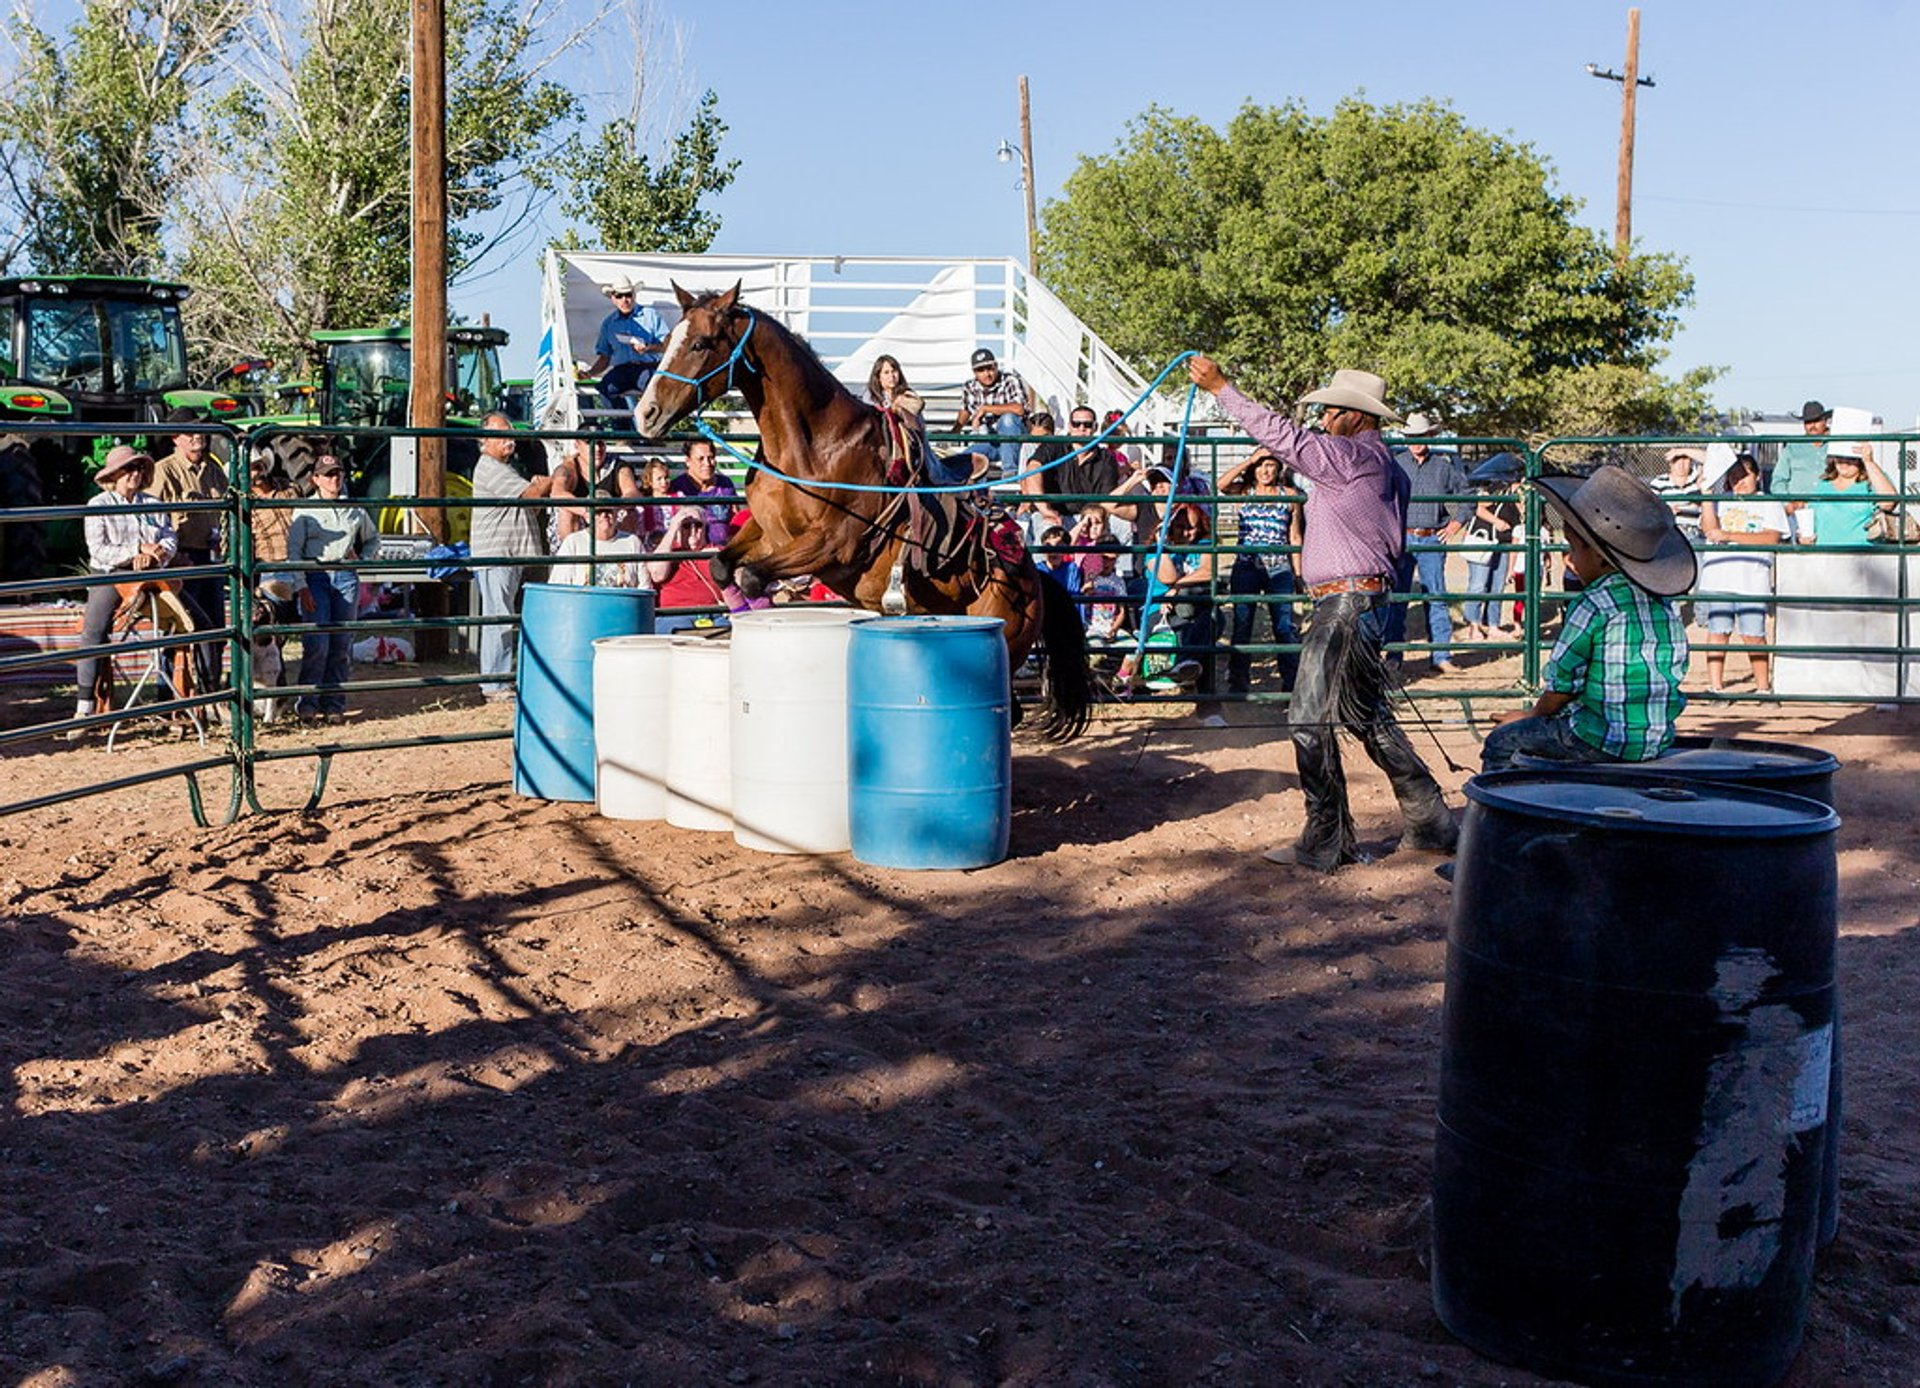 Southern New Mexico State Fair and Rodeo in New Mexico 2020 - Best Time